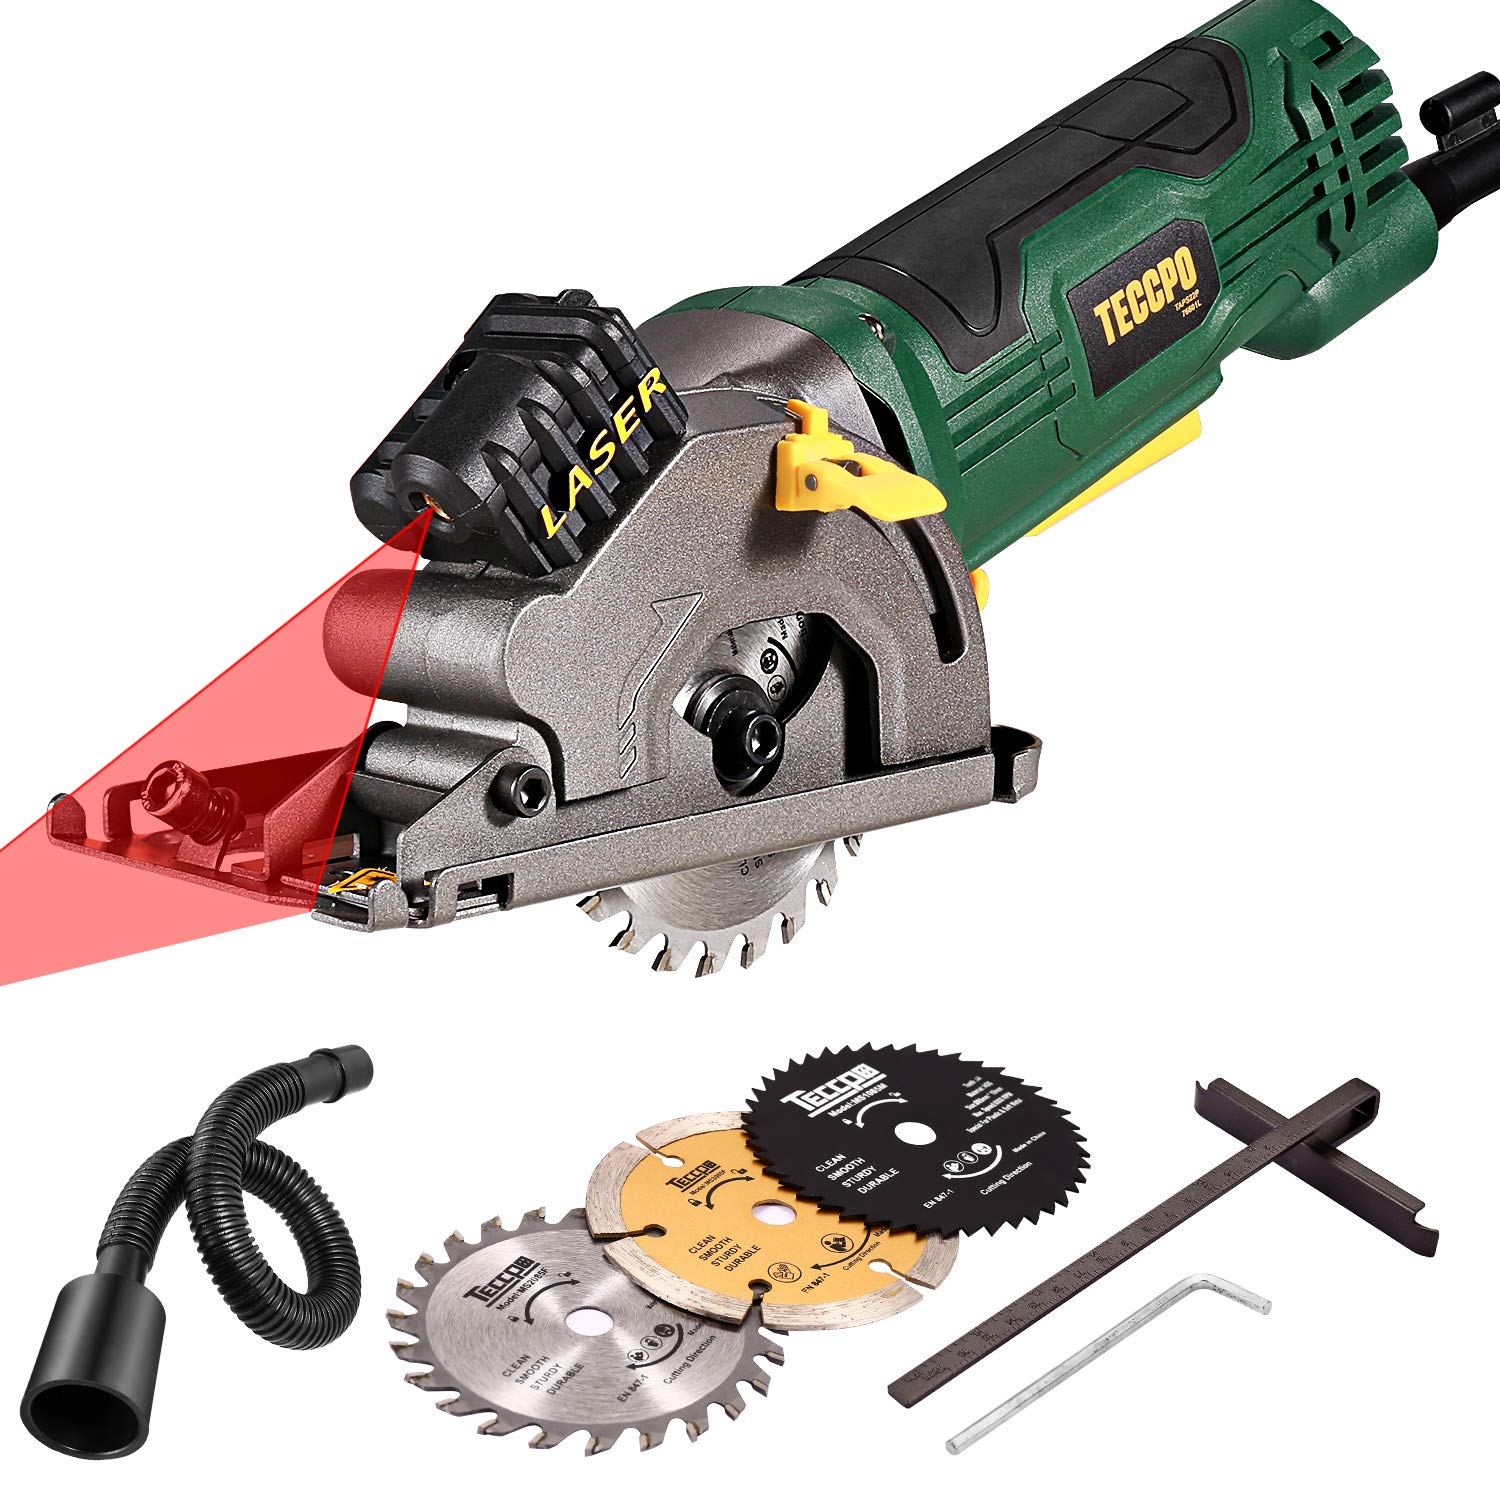 Circular Saw with Laser, TECCPO 4.0A Compact Circular Saw, 3500 RPM 480W Fine Copper Motor, Scale Ruler, 3 Blades for Wood, Tile, Soft Metal and Plastic Cuts / TAPS22P